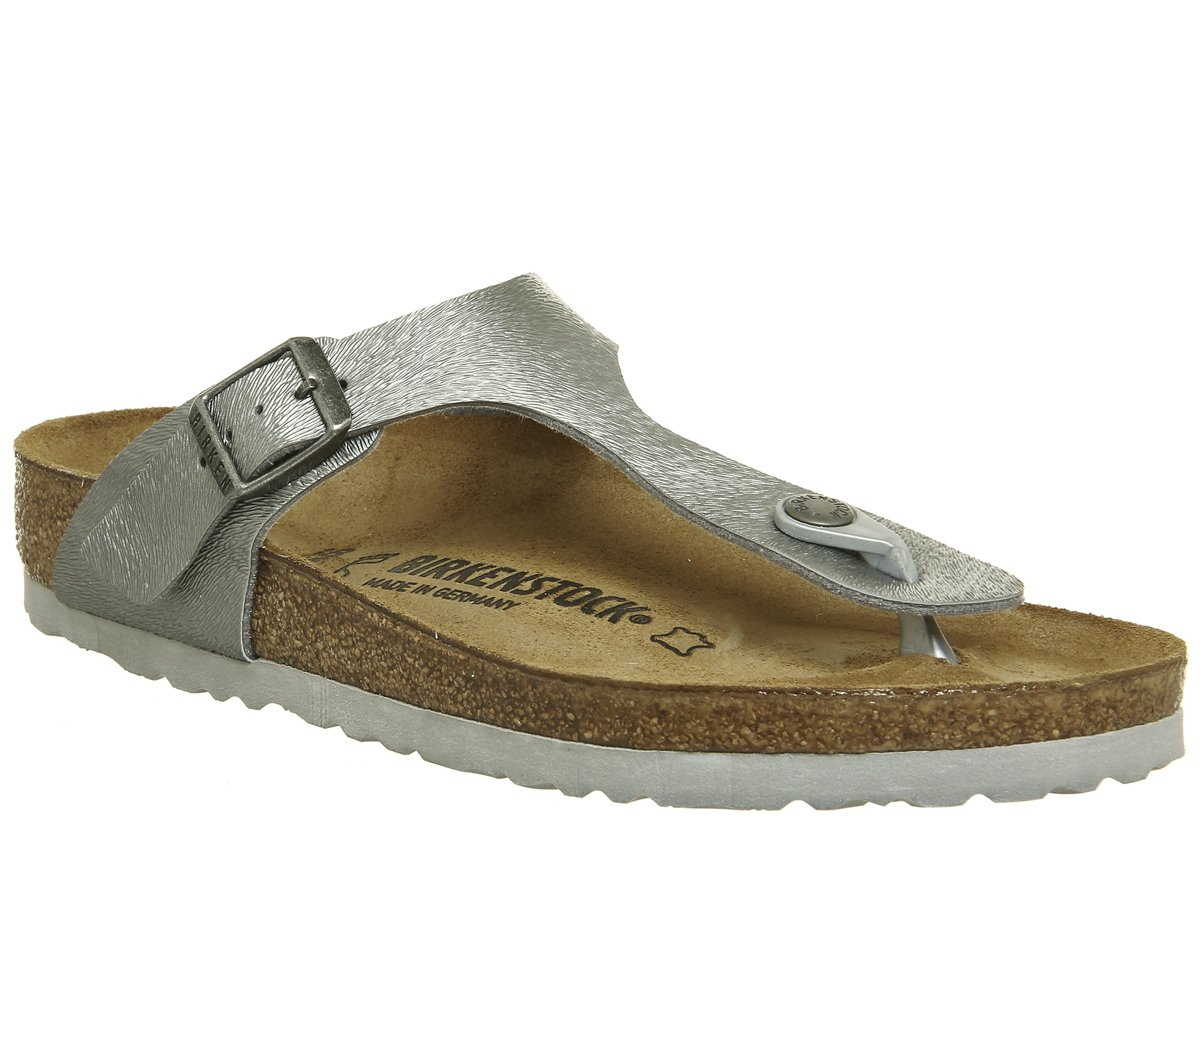 BIRKENSTOCK Damen Gizeh Zehentrenner  40 EU|Grau (Animal Fascination Gray Animal Fascination Gray)